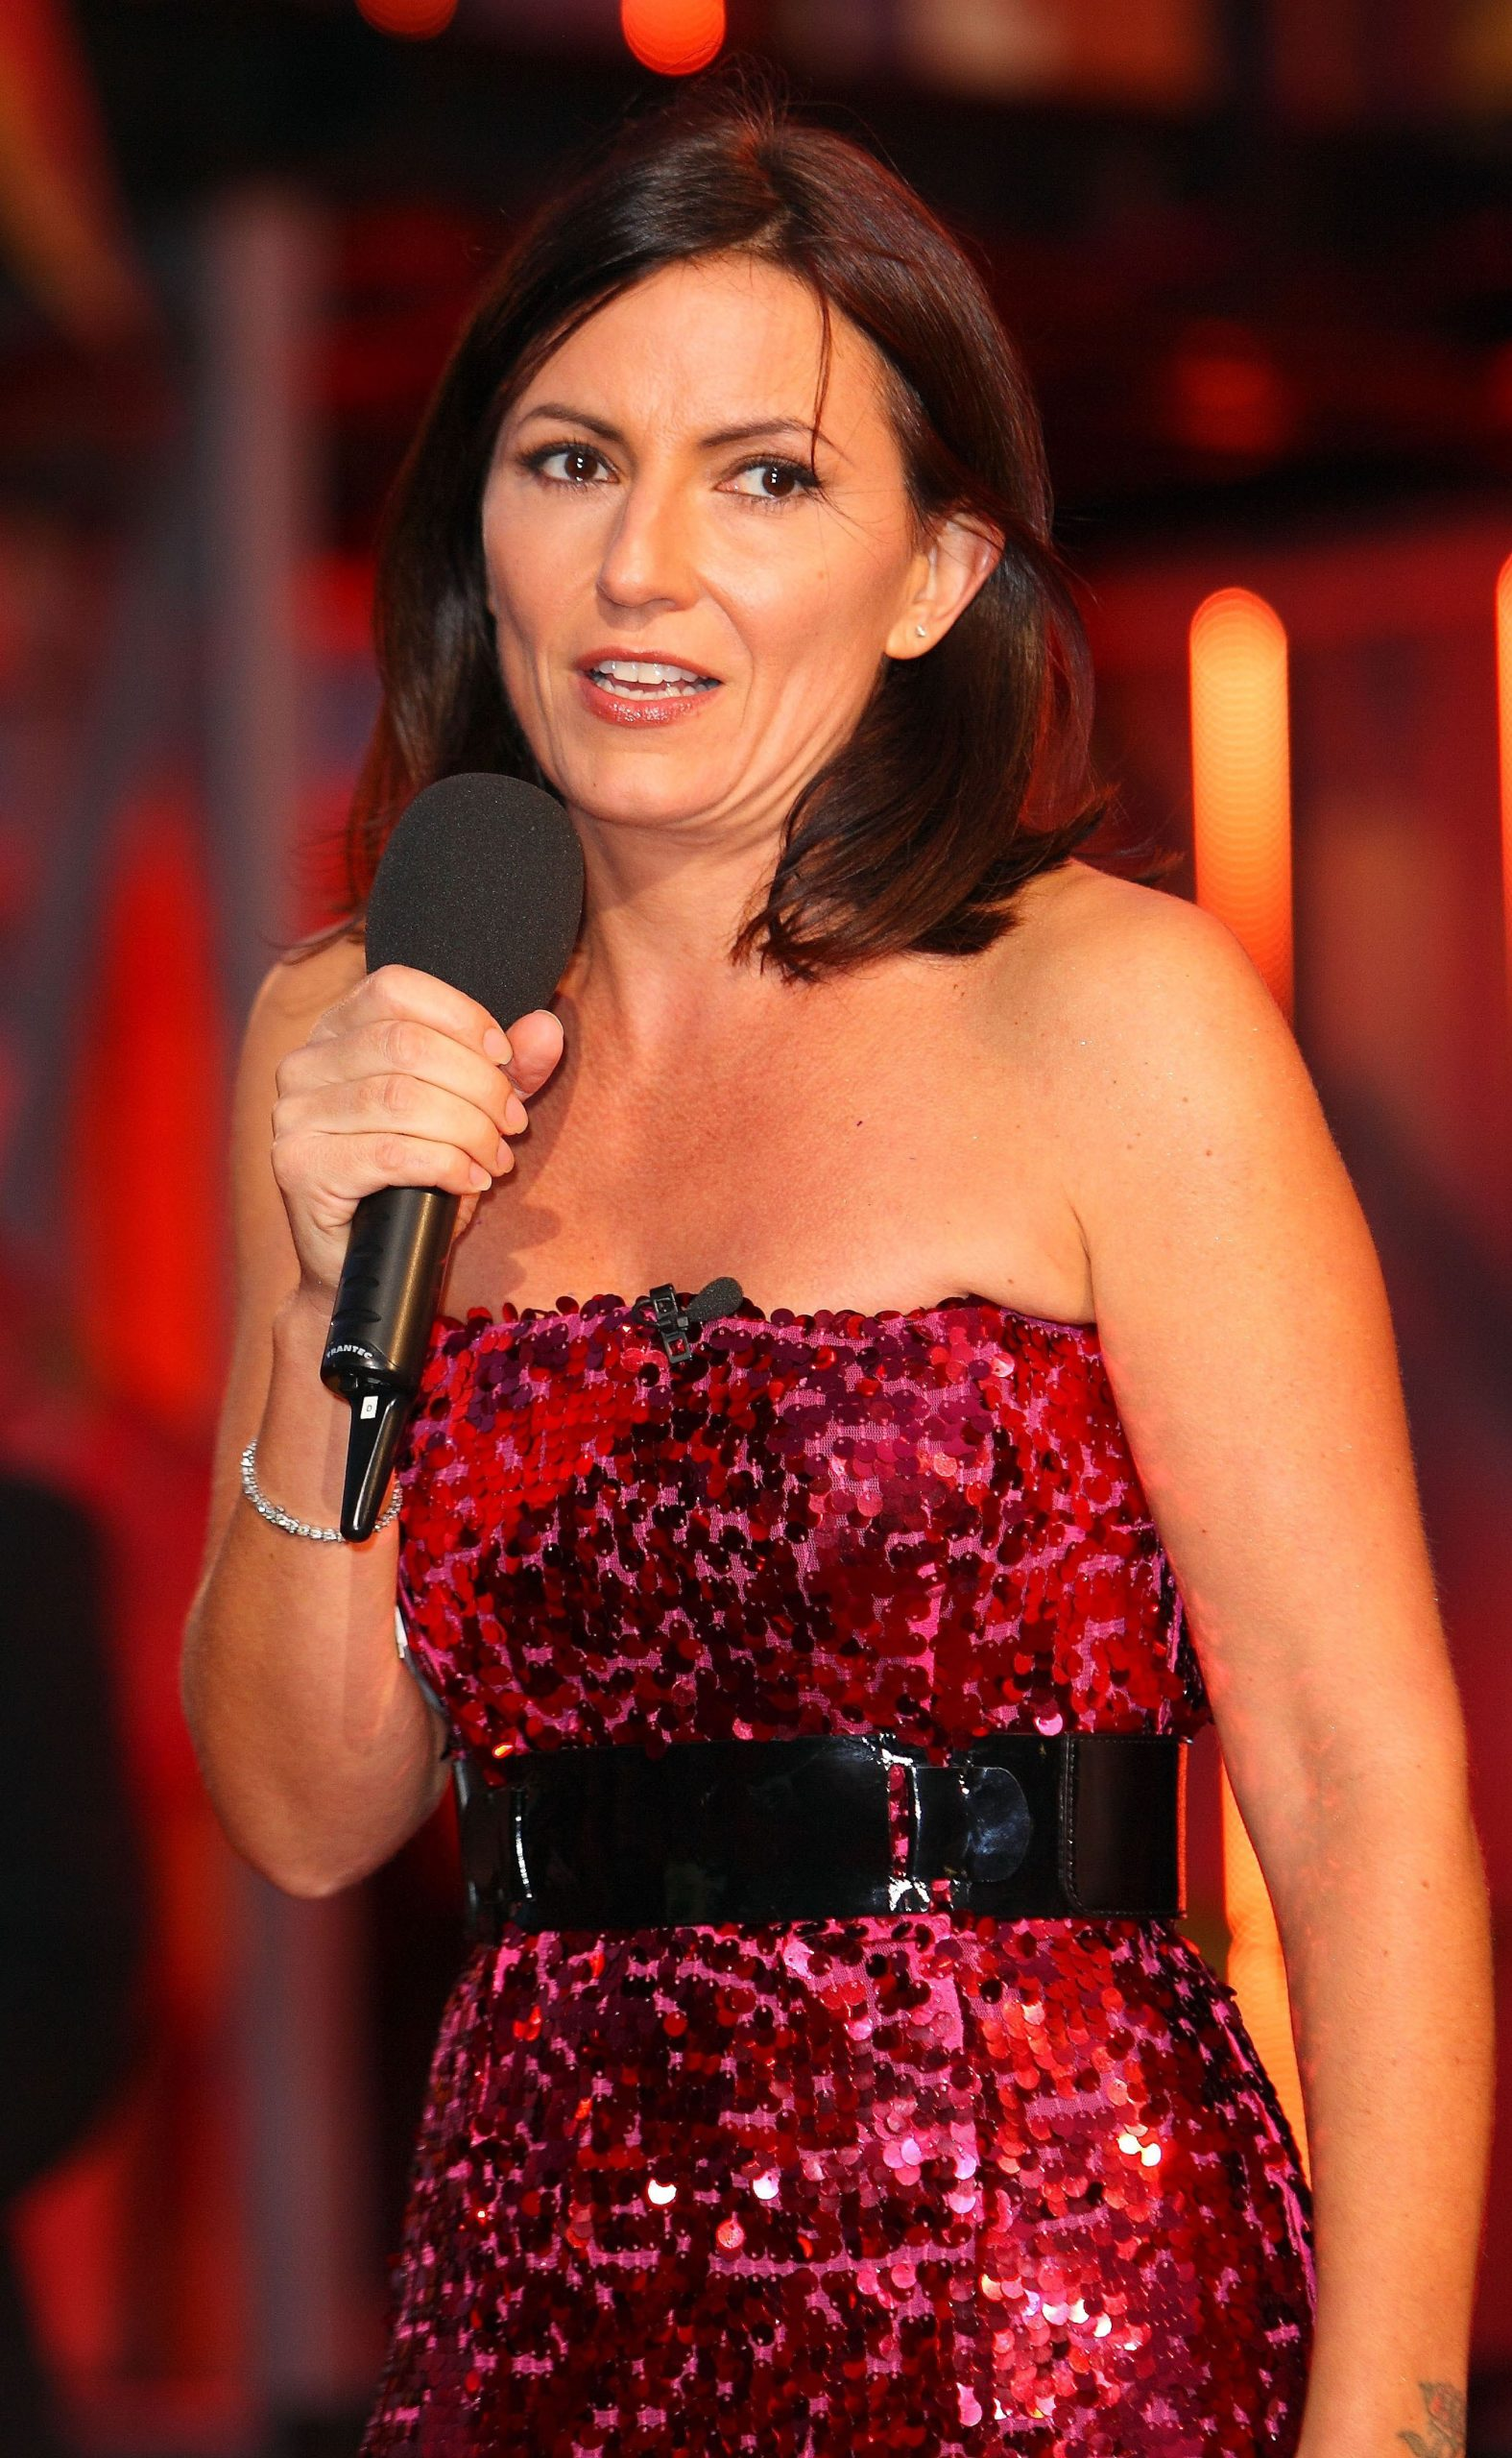 Davina McCall Big Brother Why was Big Brother cancelled